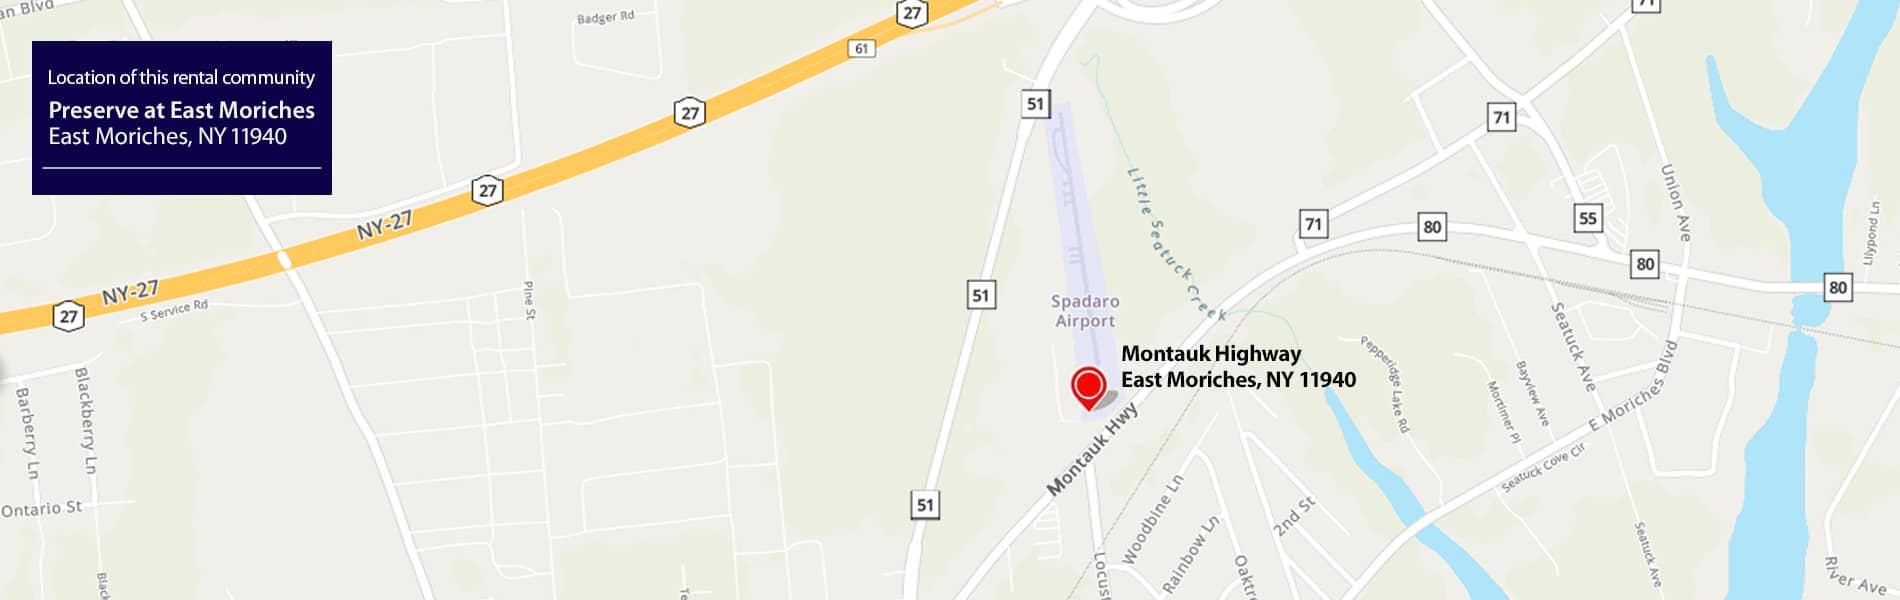 Preserve at East Moriches Map